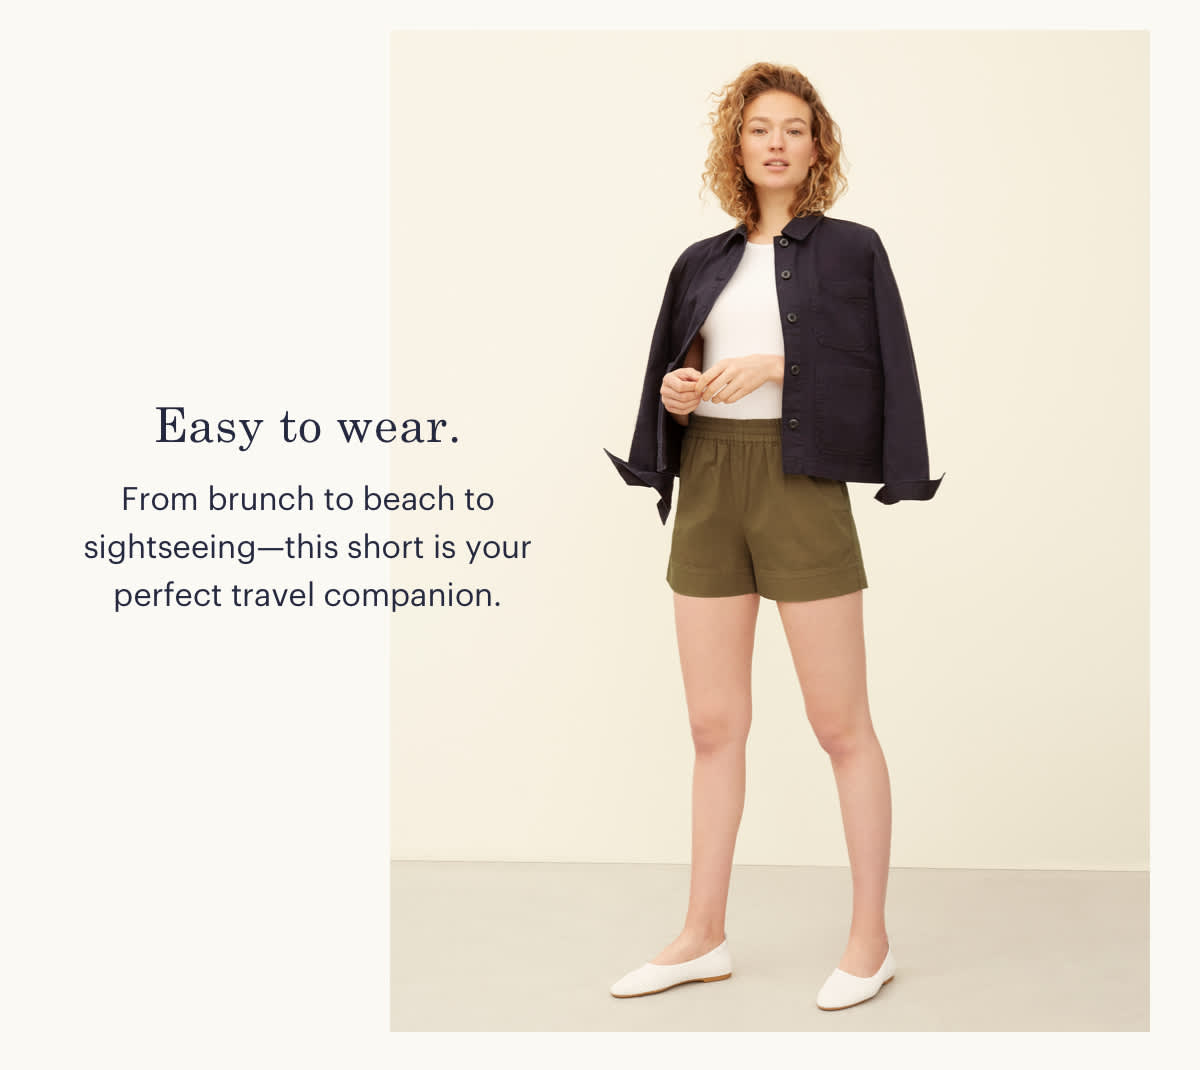 Easy to wear. From brunch to beach to sightseeing--this short is your perfect travel companion.